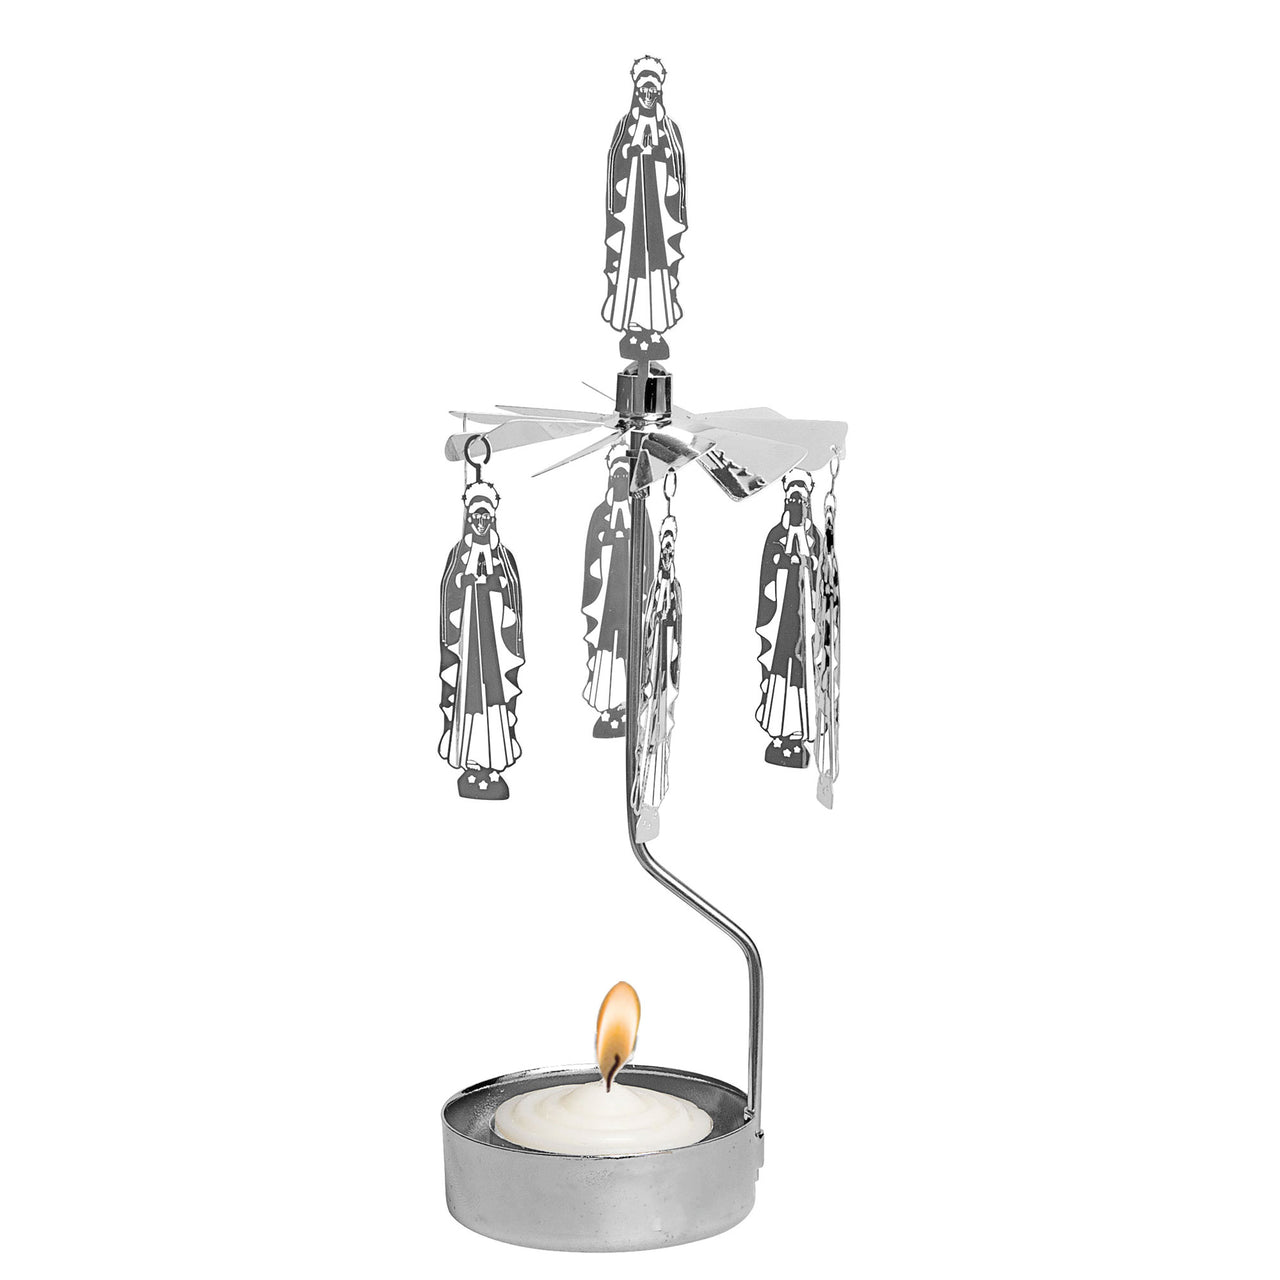 Maria Rotary Candle Holder - Northlight Homestore